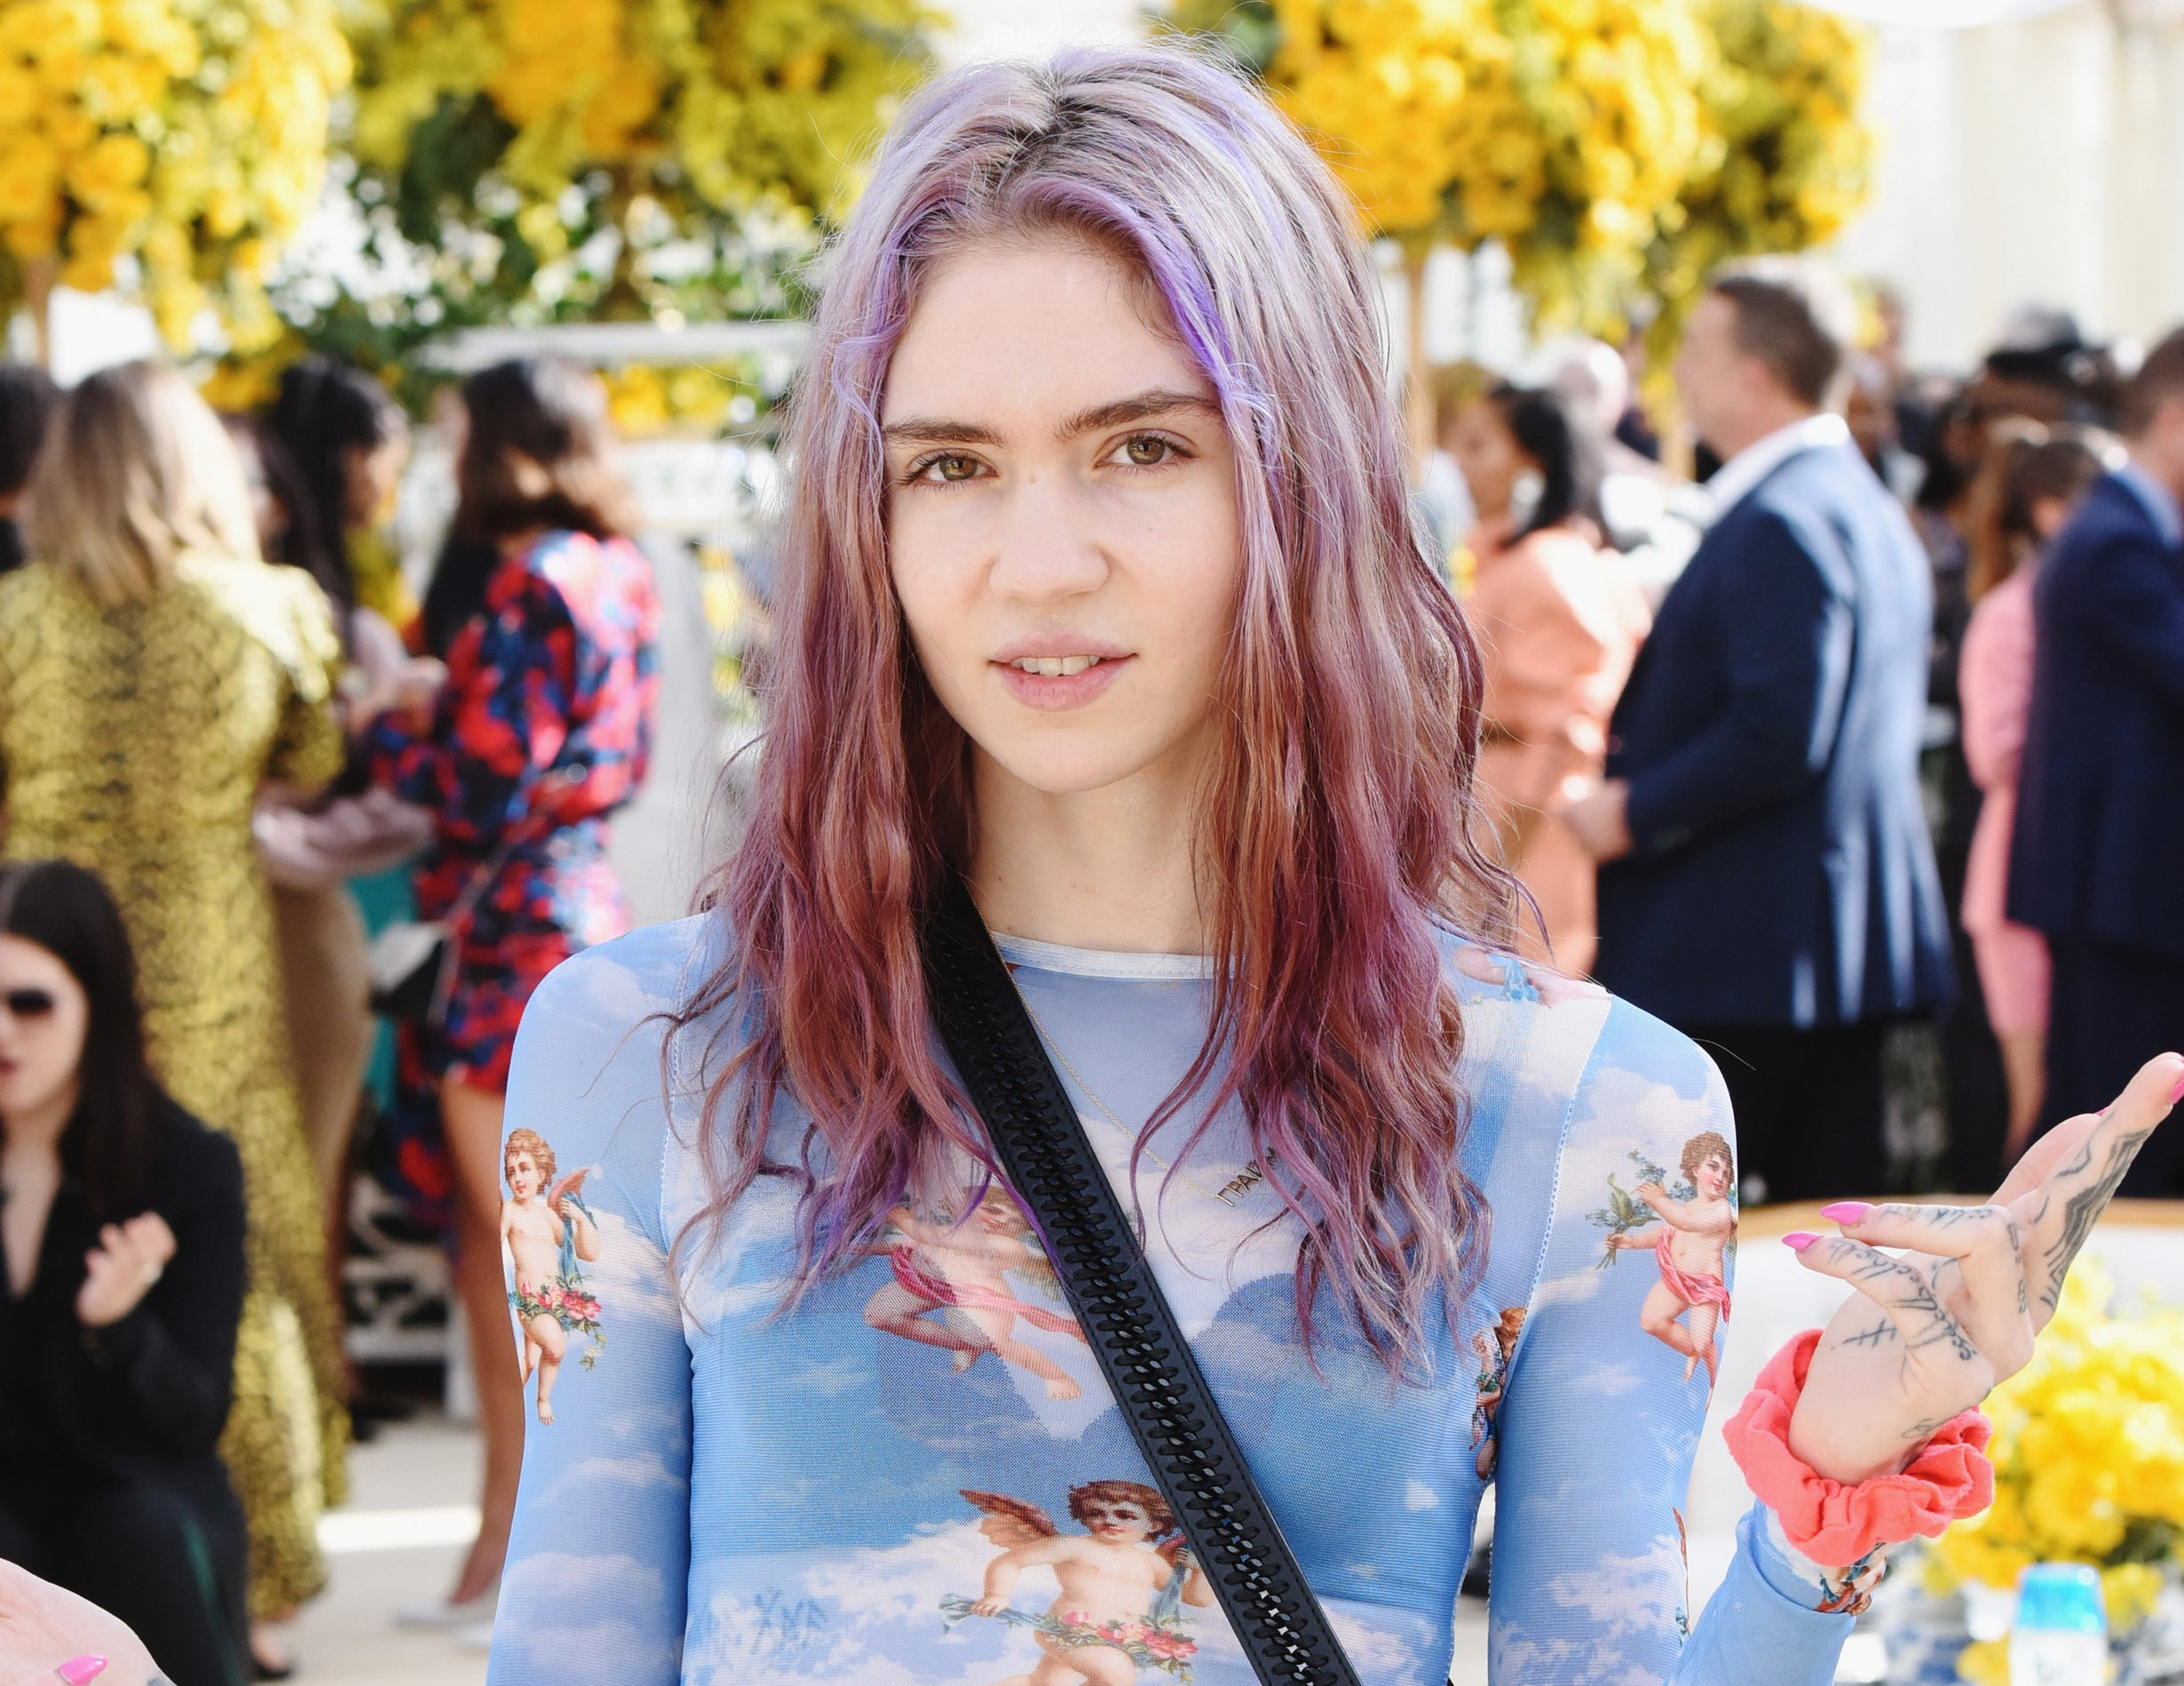 Grimes wears a sheer blue top with angels printed on it